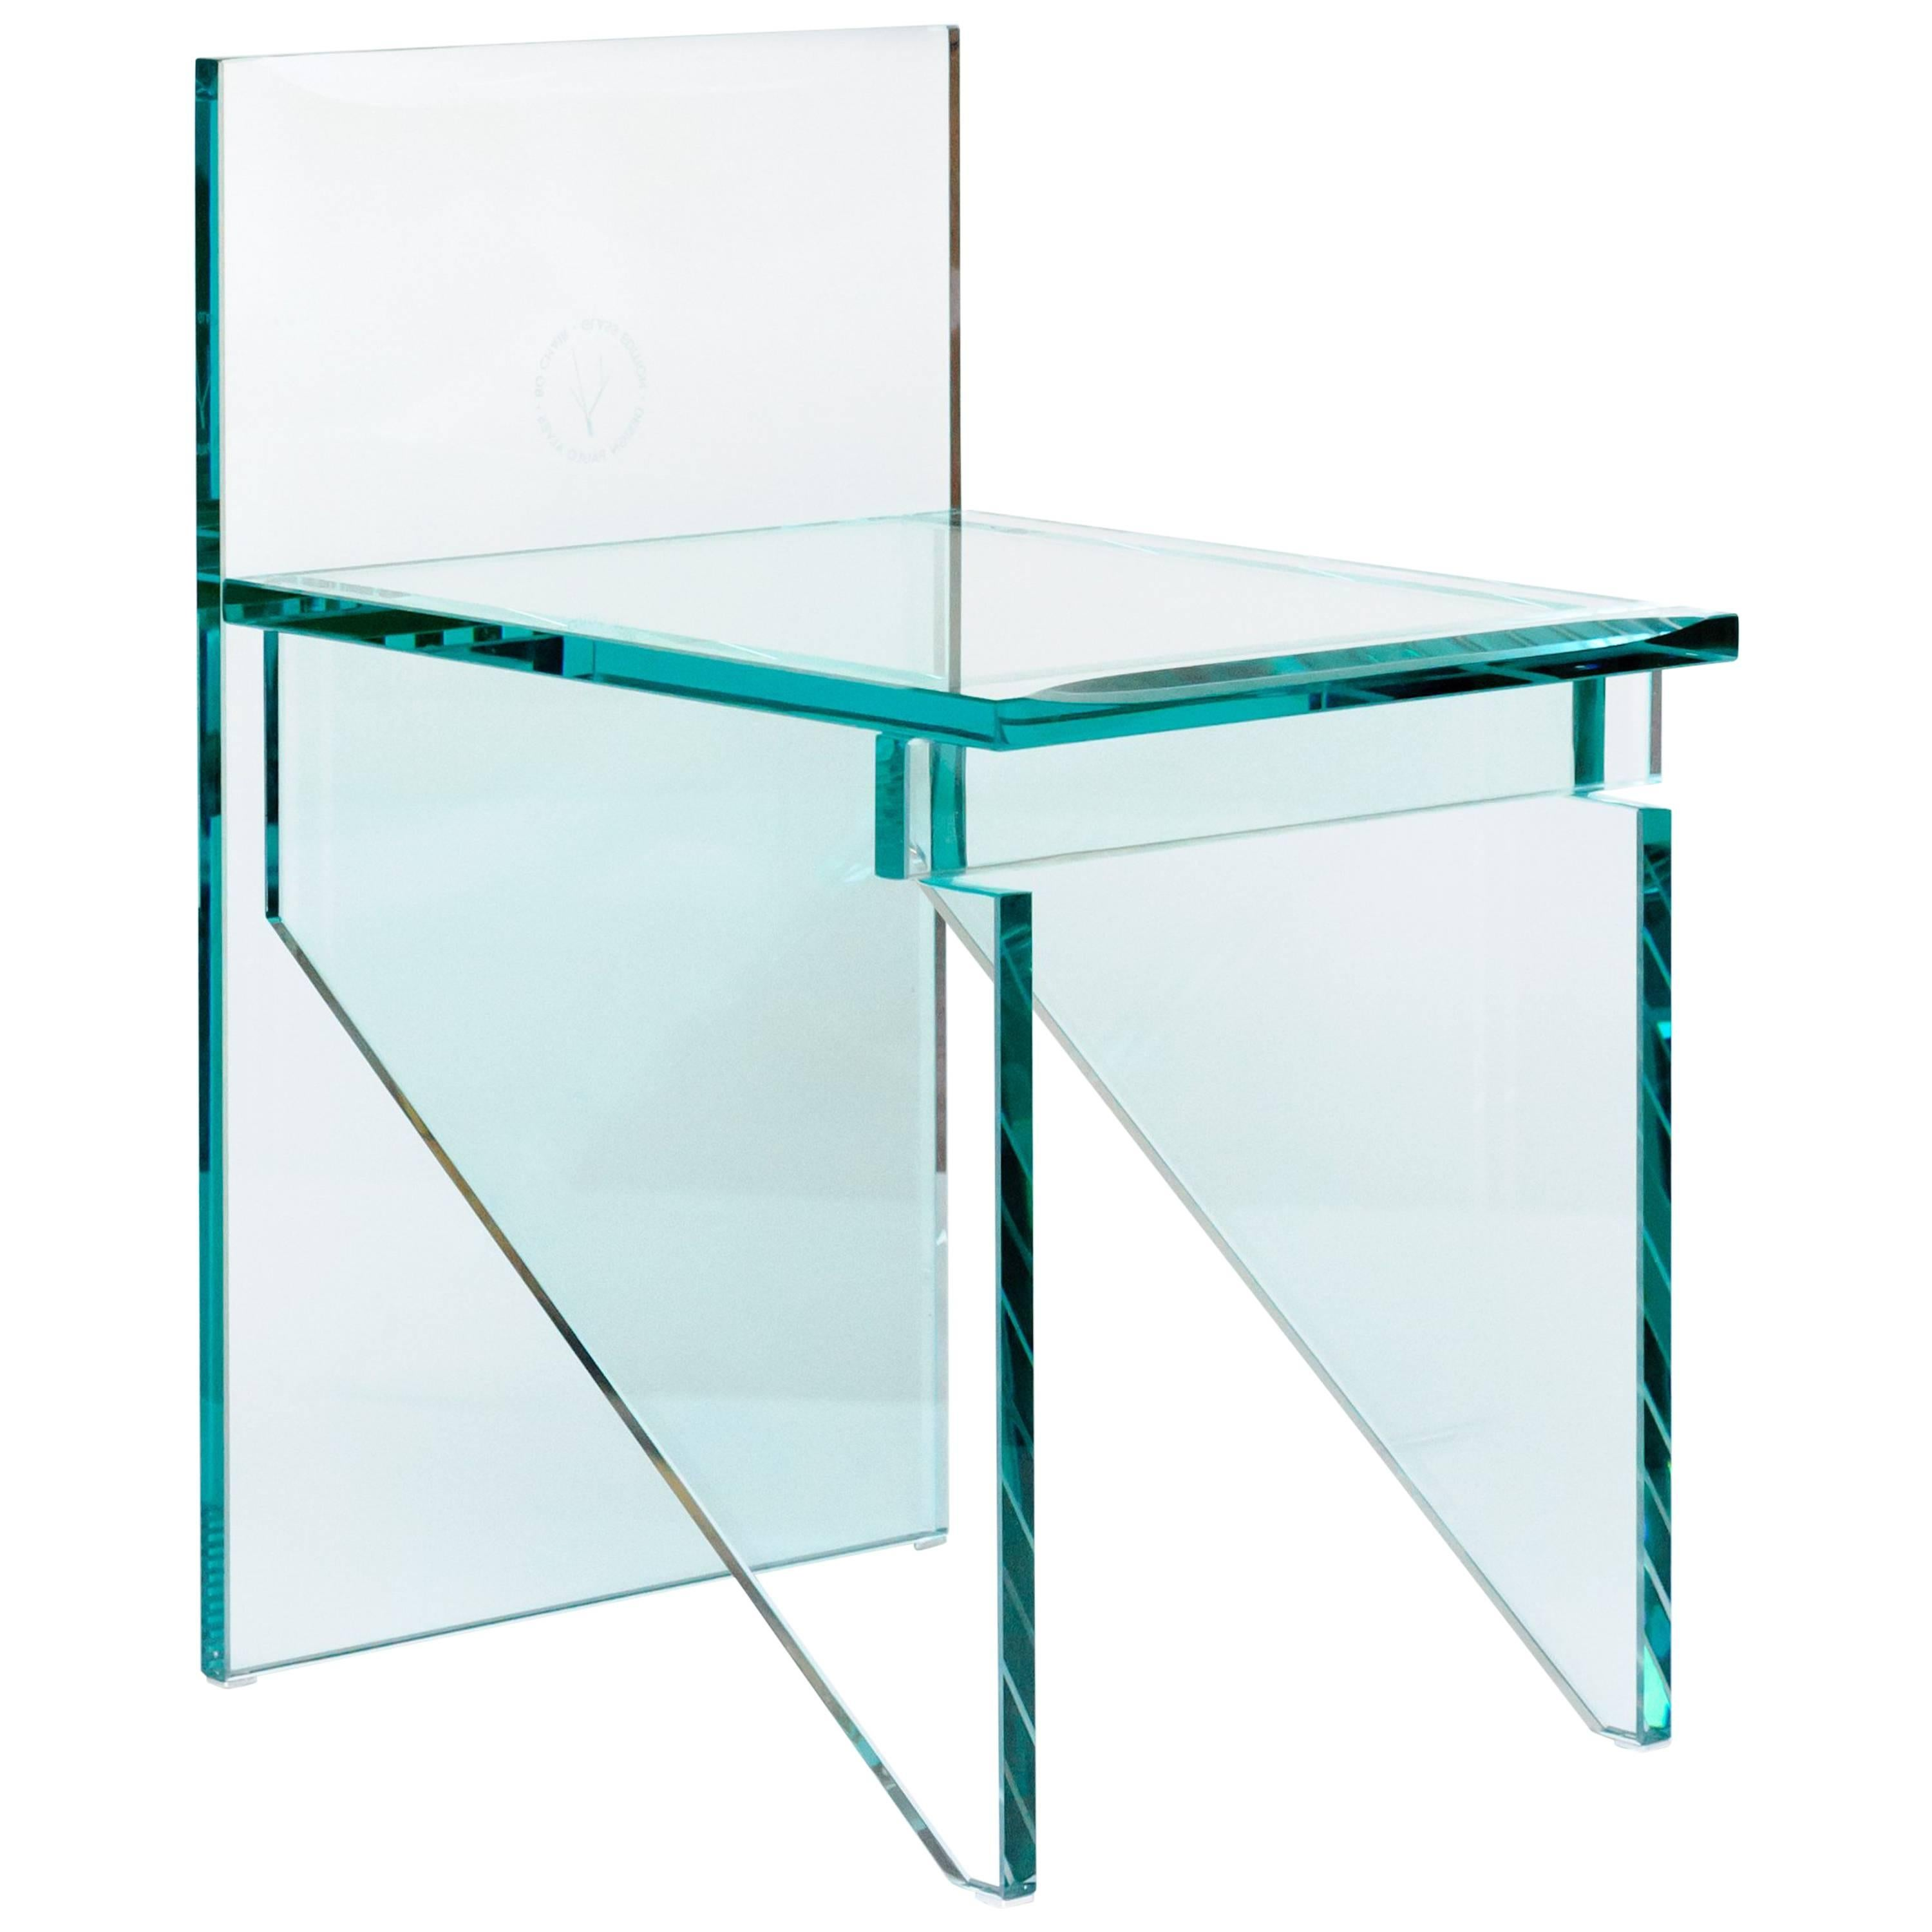 Contemporary Bo Glass Chair by Paulo Alves